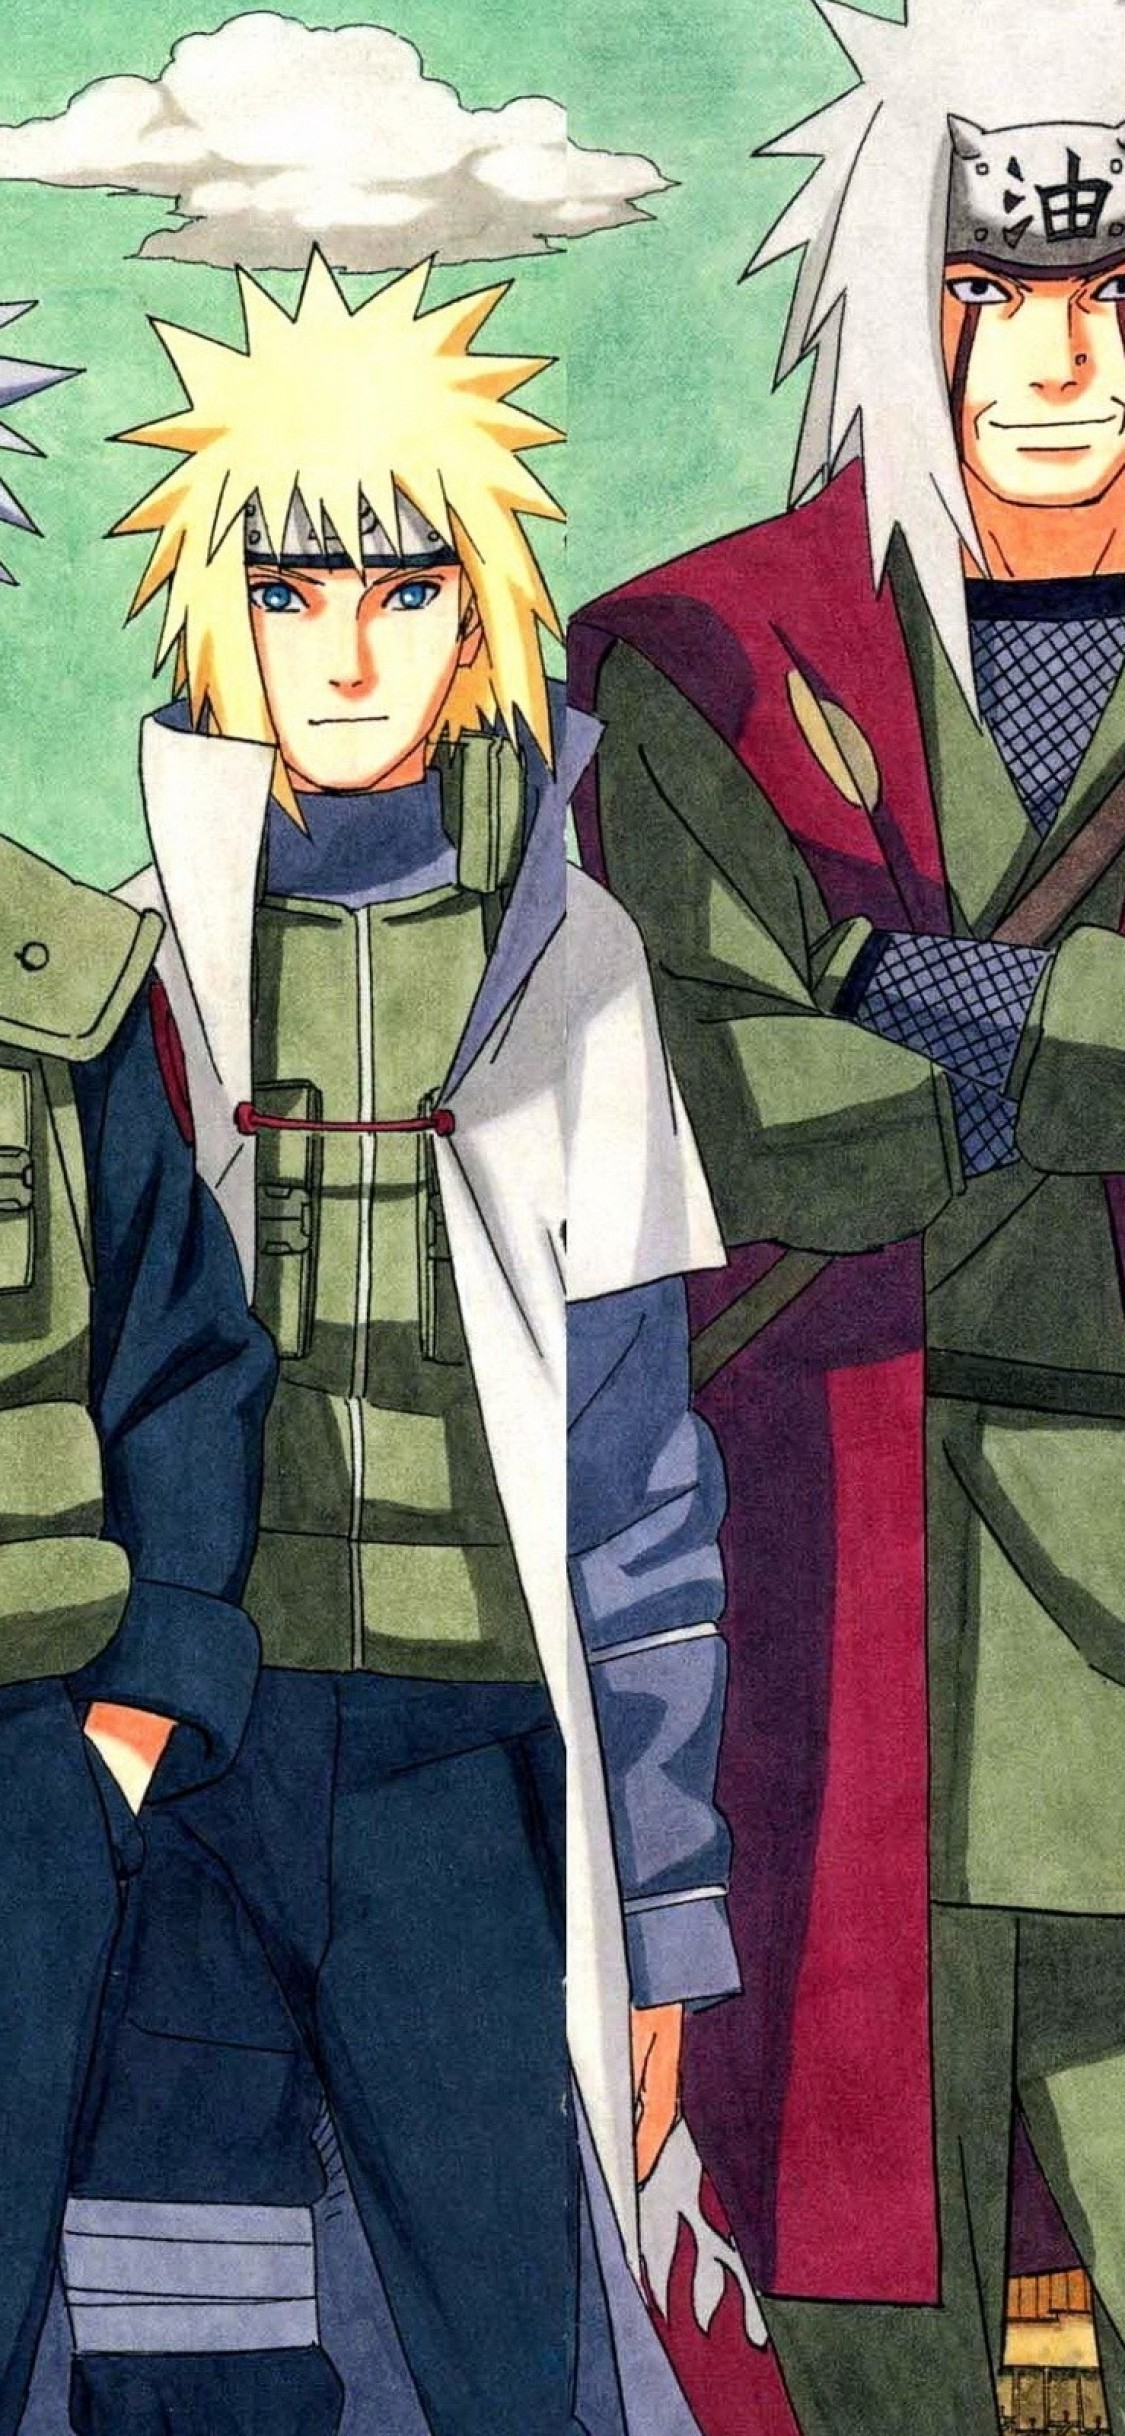 Naruto Kakashi Jiraiya Minato Sandaime Naruto Sensei And Student 1125x2436 Download Hd Wallpaper Wallpapertip